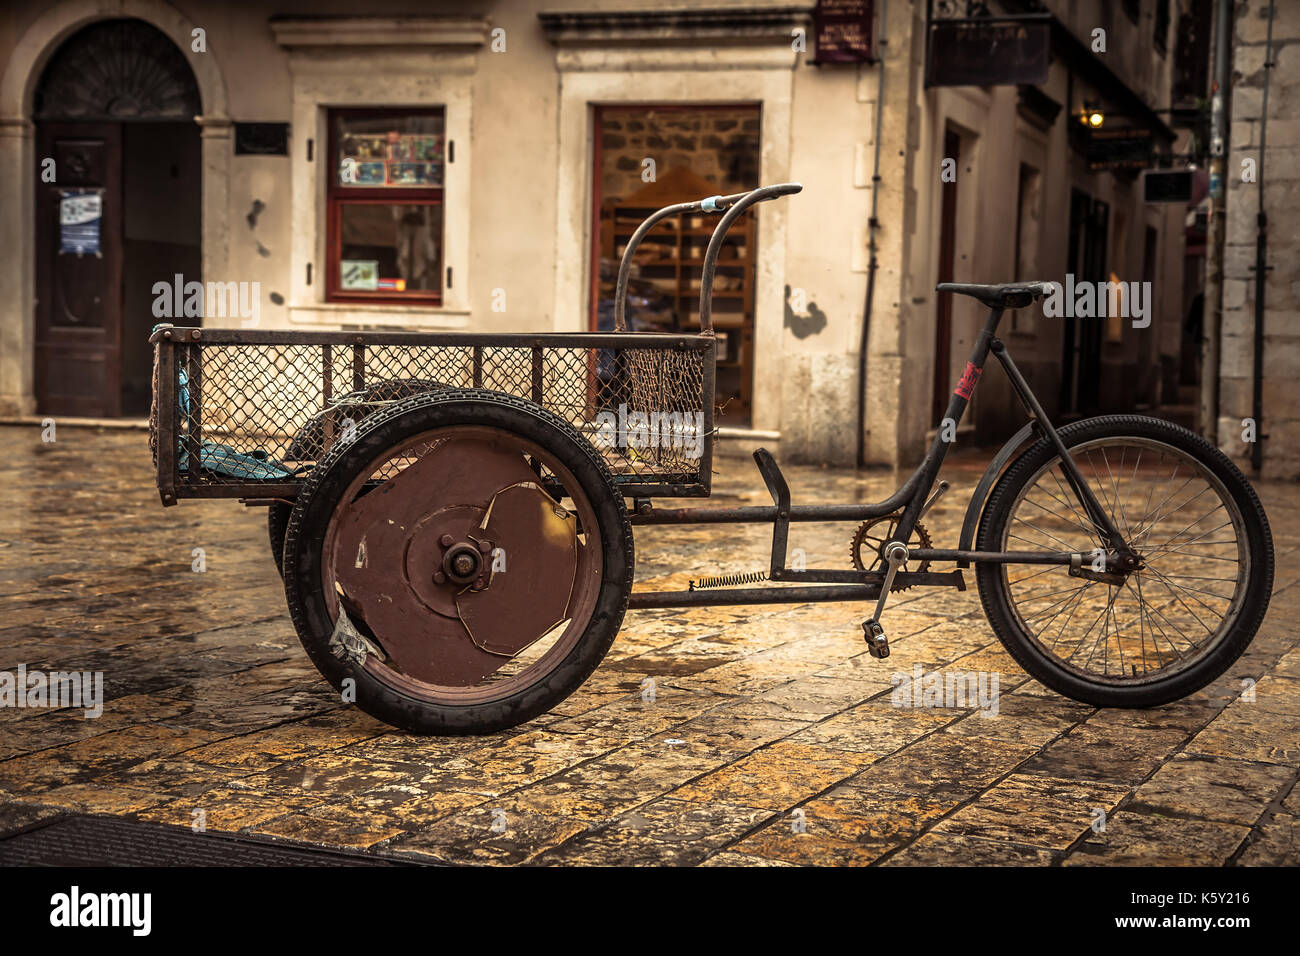 Retro bicycle on vintage europe medieval plaza with stone pavers in overcast day during raining autumn season in old European city Kotor with medieval - Stock Image